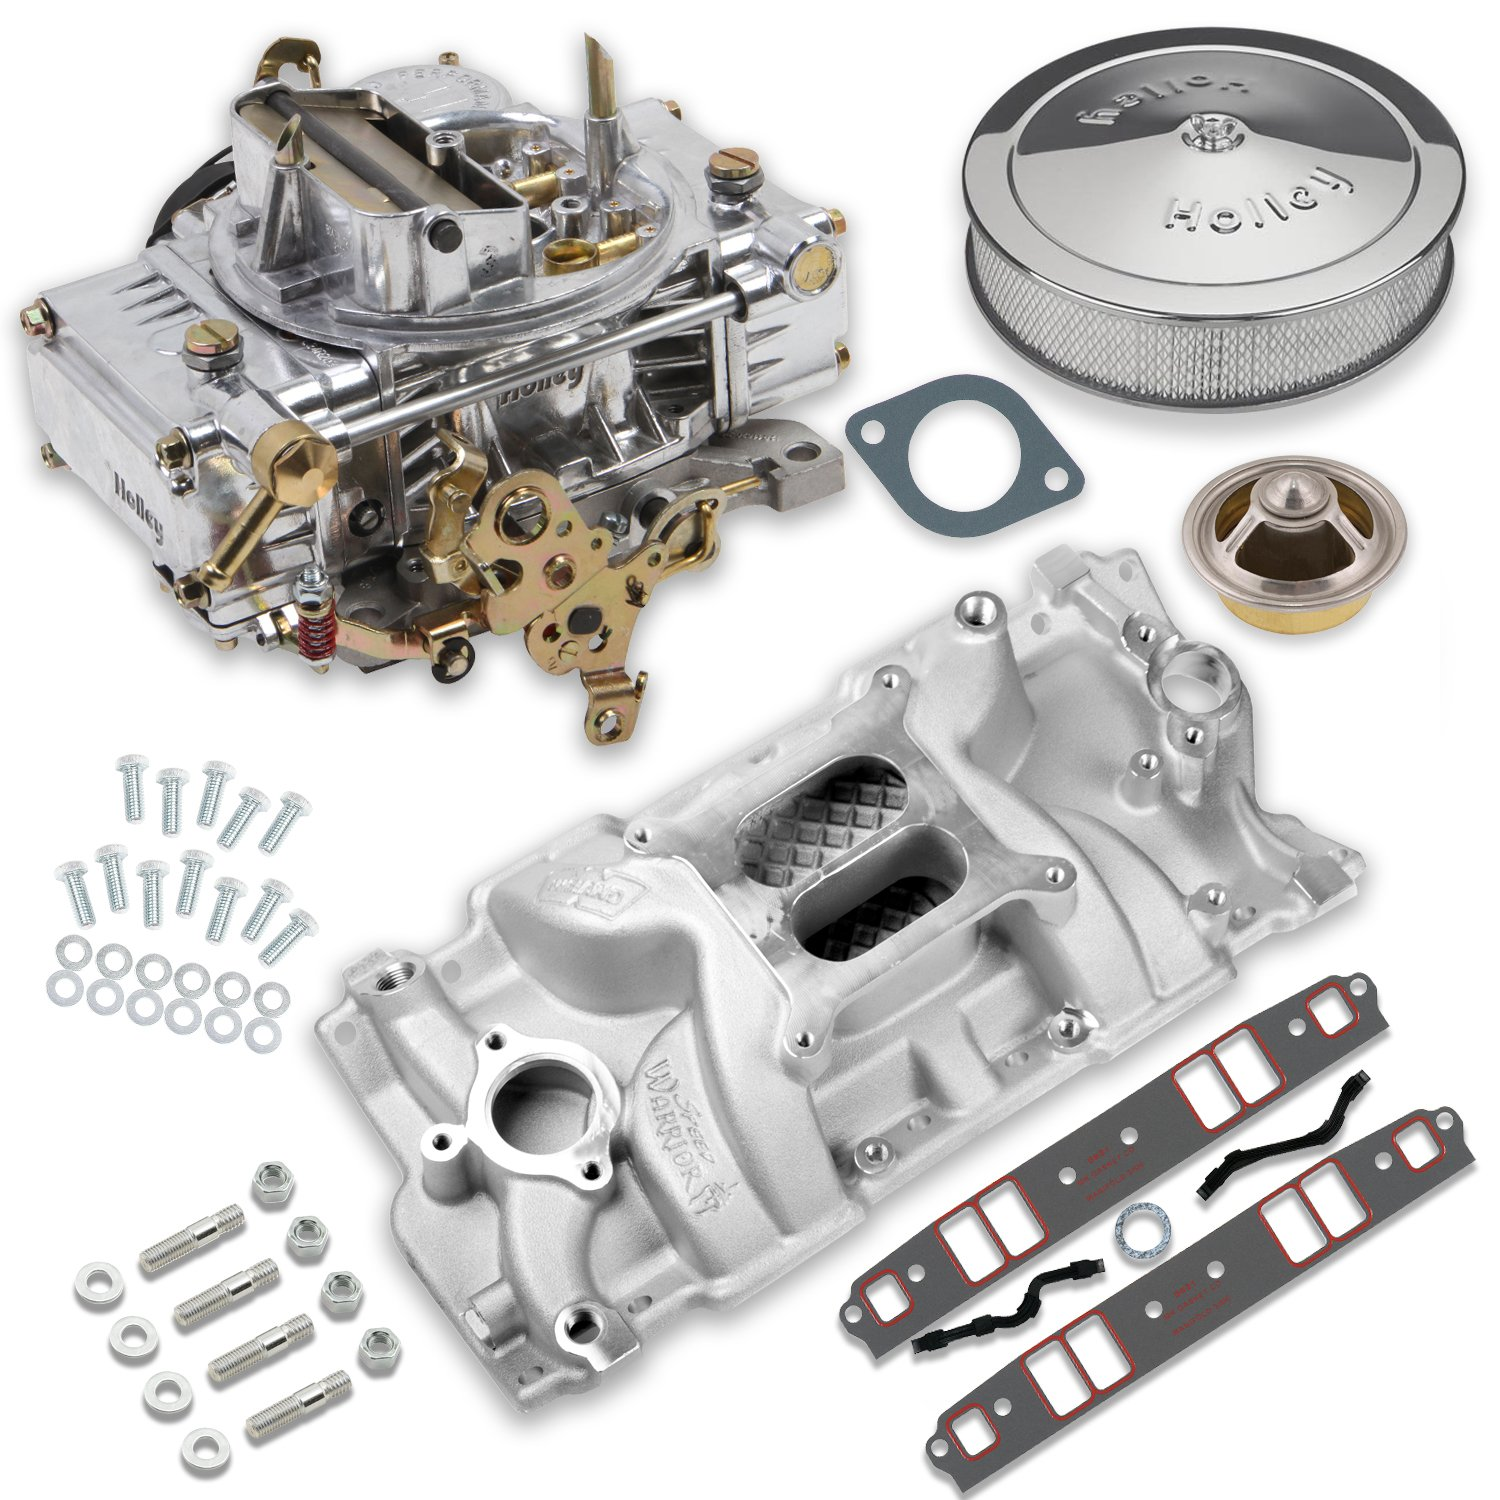 Holley VK060052 750 CFM 0-80508S Carburetor And Small